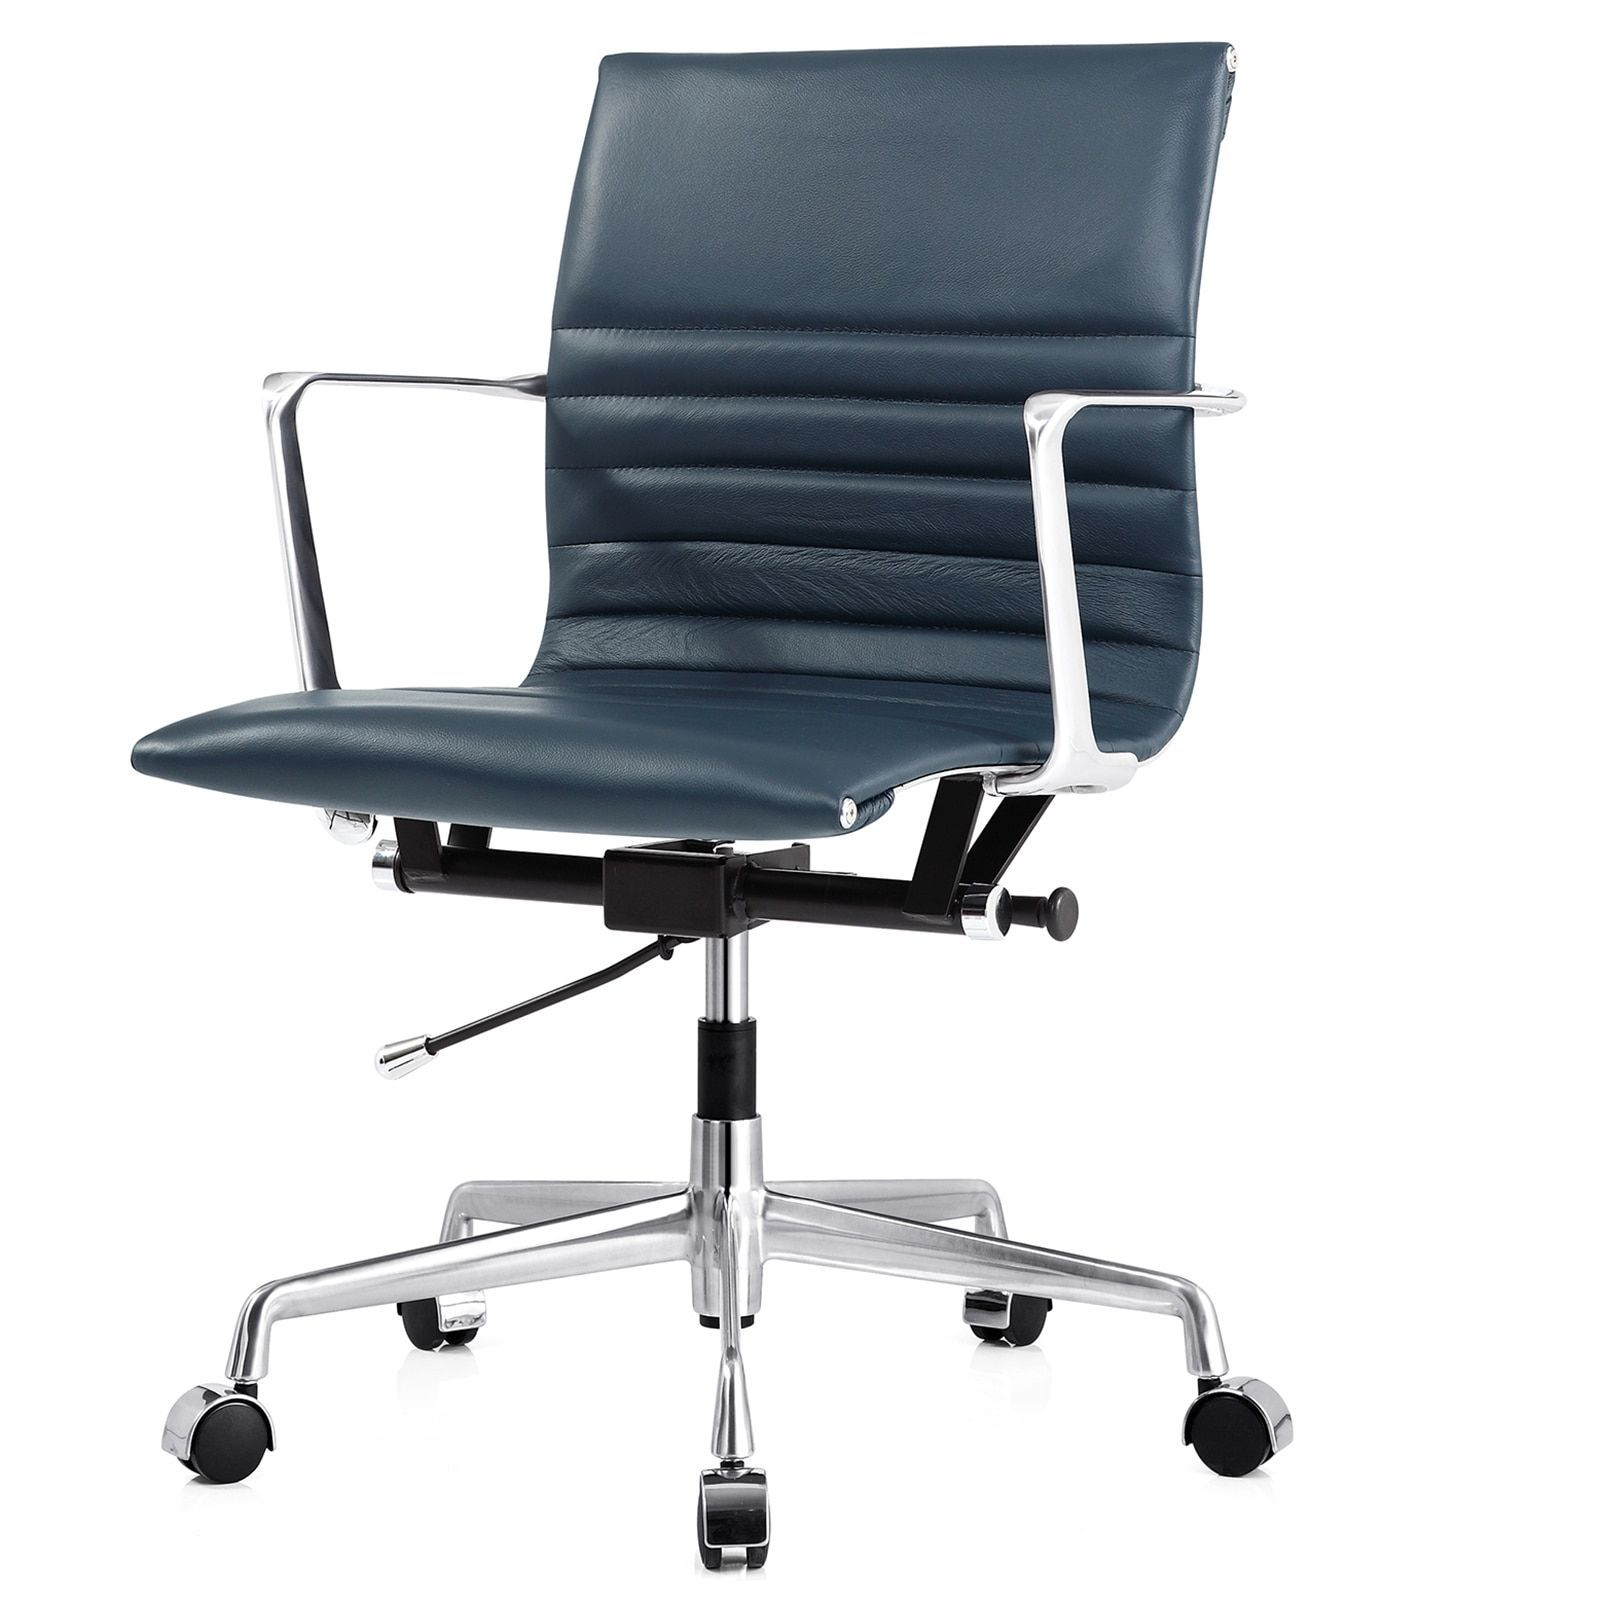 M navy italian leather executive office chair products